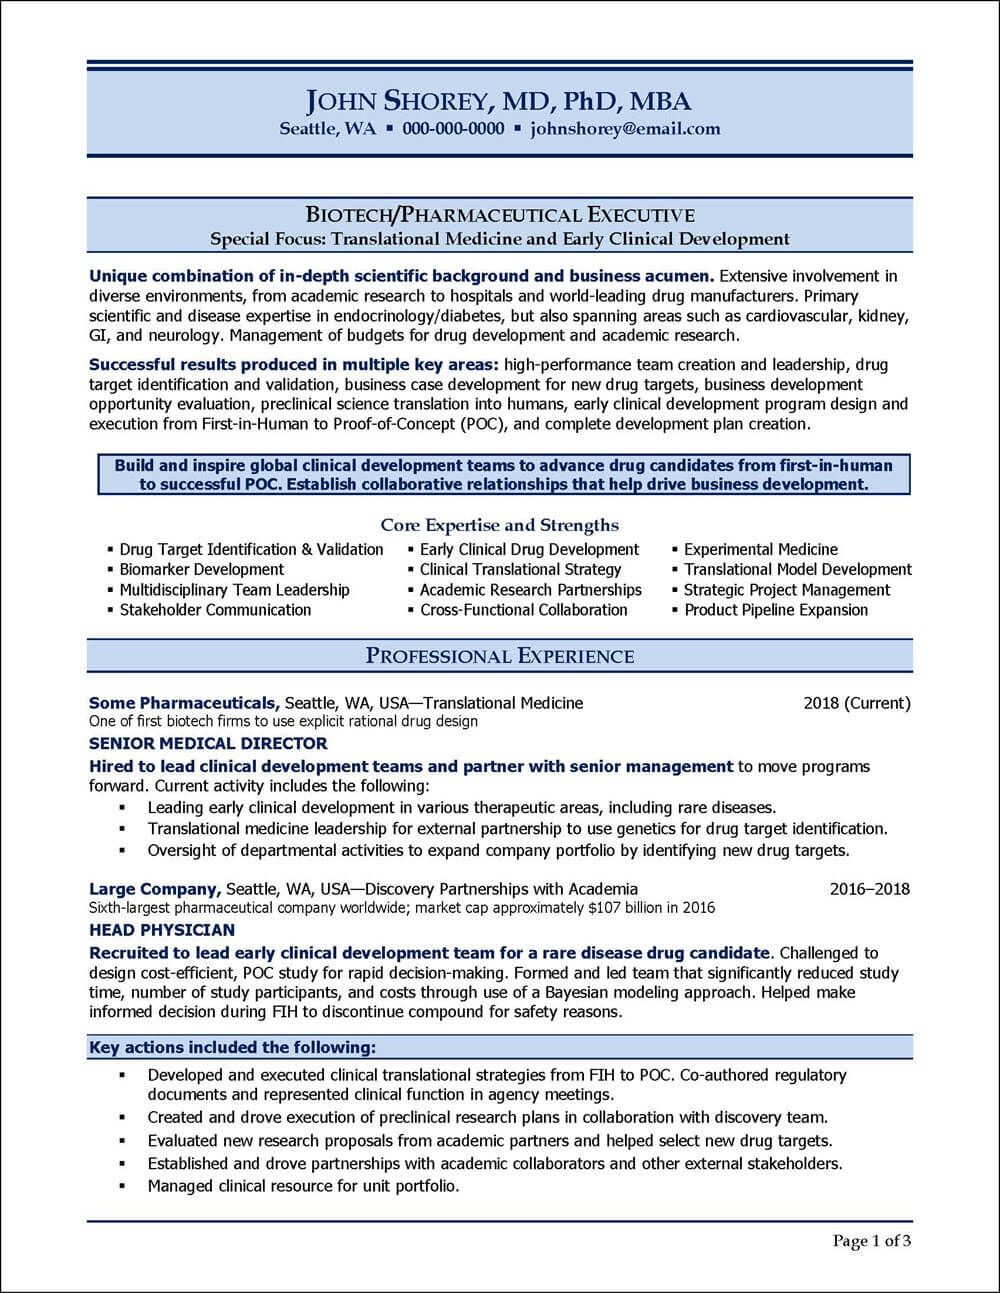 Example Resume For A Biotechnology Pharmaceutical Industry Executive Resume Examples Resume Professional Resume Samples